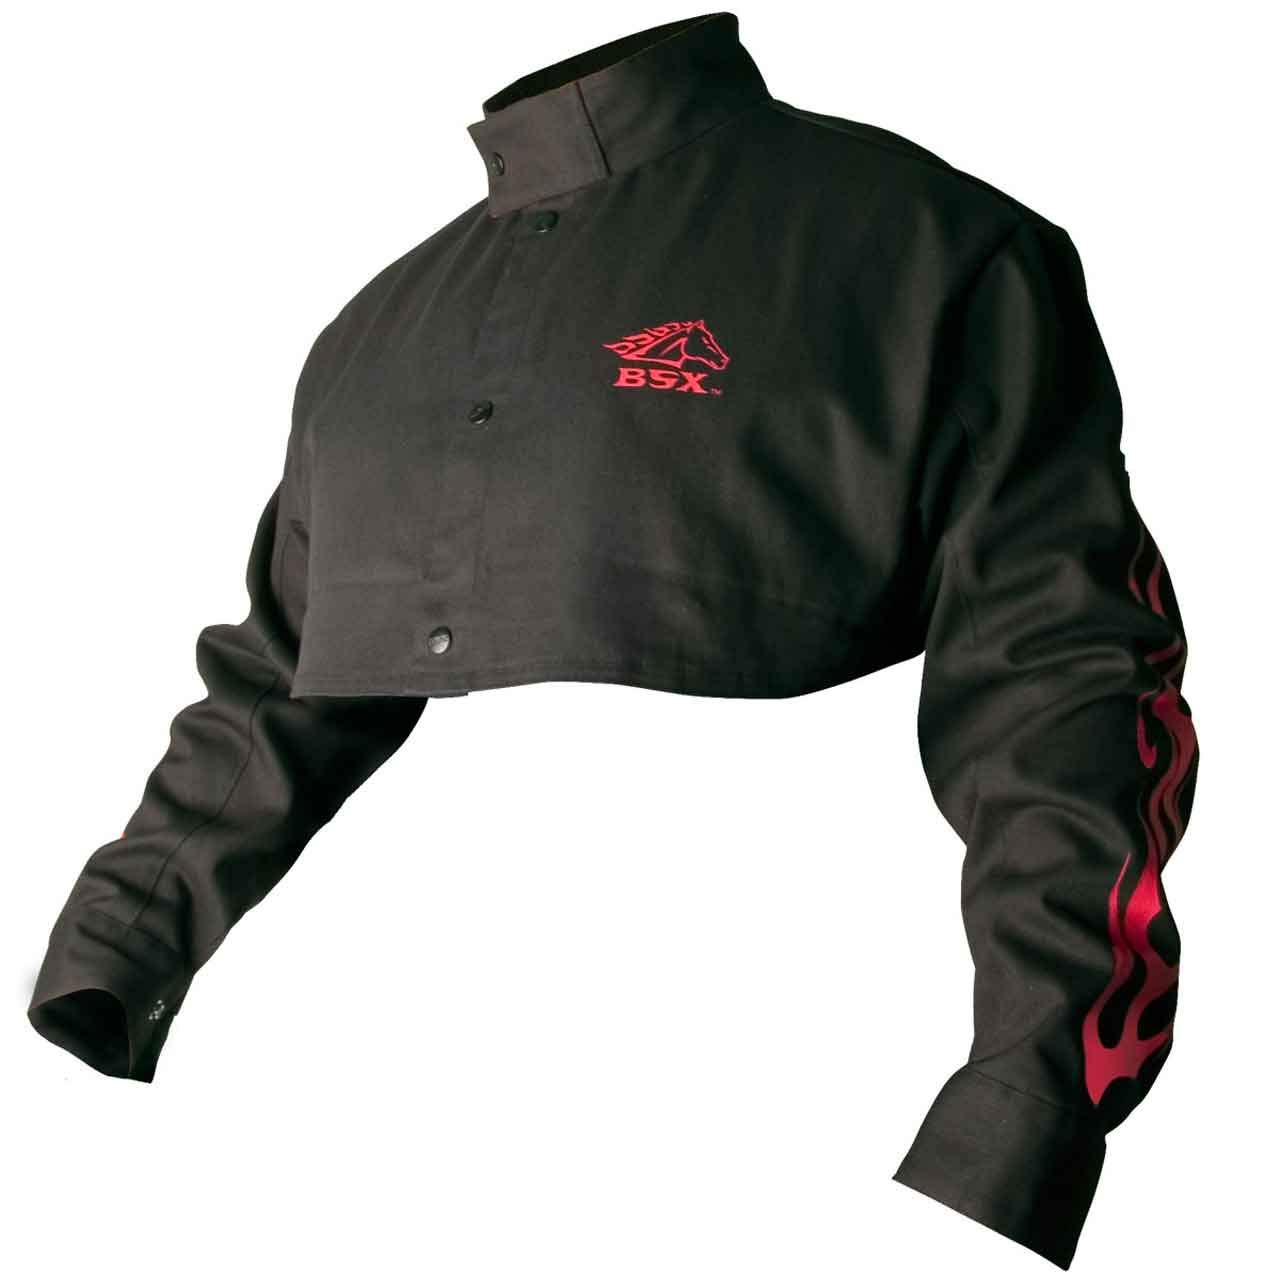 f5522fa0be0a BSX Flame-Resistant Welding Cape Sleeve - Black with Red Flames ...